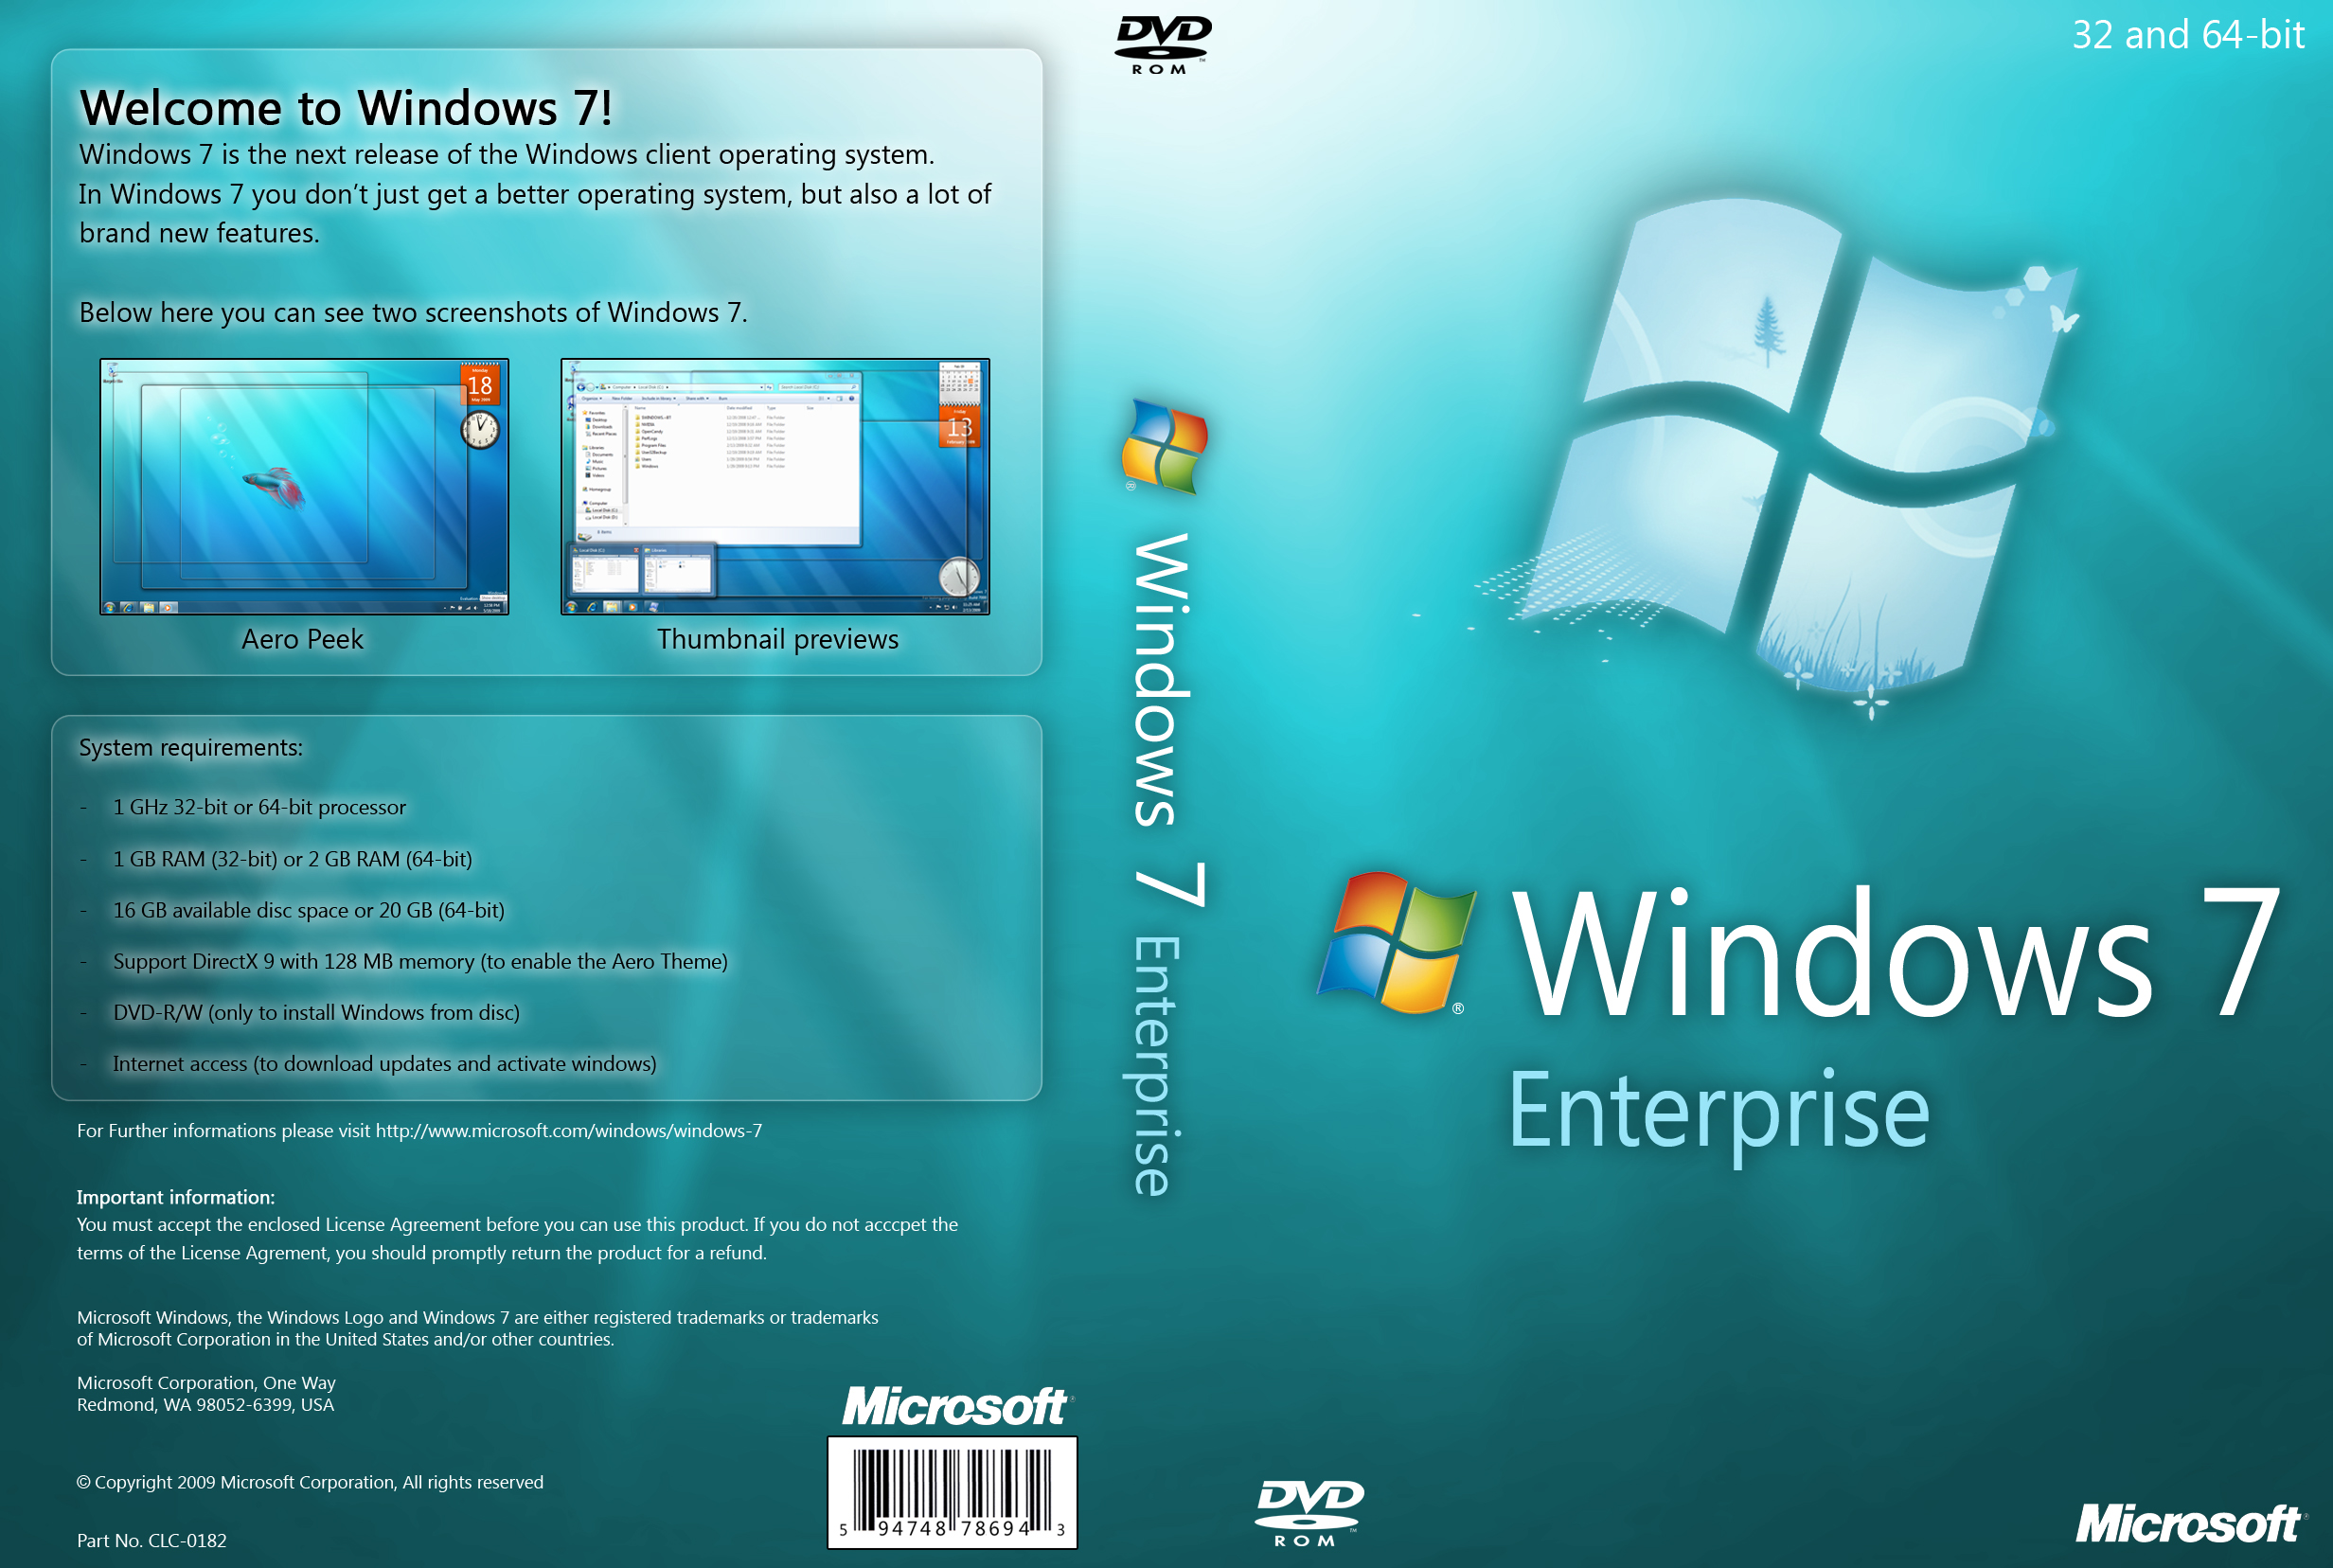 windows 7 enterprise activation,Windows 7 Enterprise ISO,windows 7 enterprise iso 32 bit,windows 7 enterprise iso 64 bit,windows 7 enterprise iso download,windows 7 enterprise iso download microsoft,windows 7 enterprise iso sp1,windows 7 enterprise key,windows 7 enterprise Product key,windows 7 enterprise vs ultimate